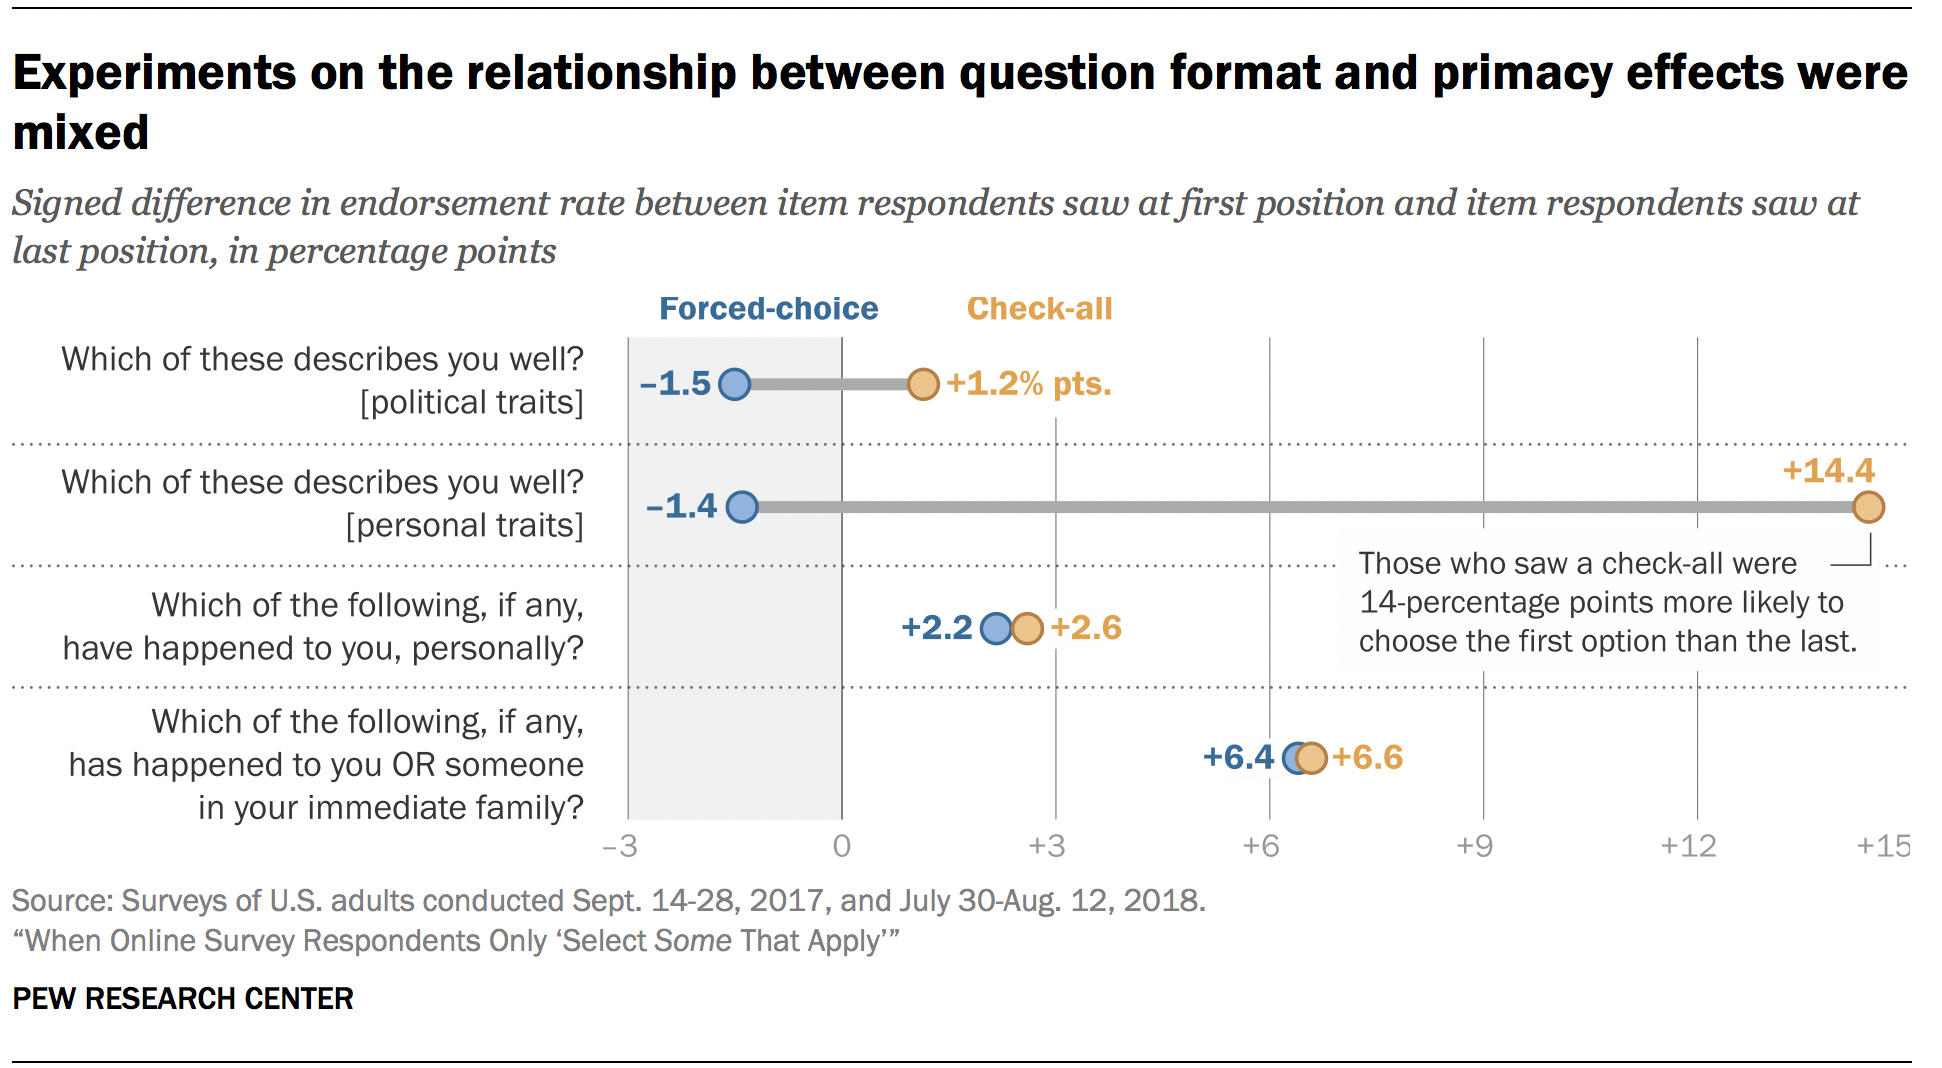 Experiments on the relationship between question format and primacy effects were mixed